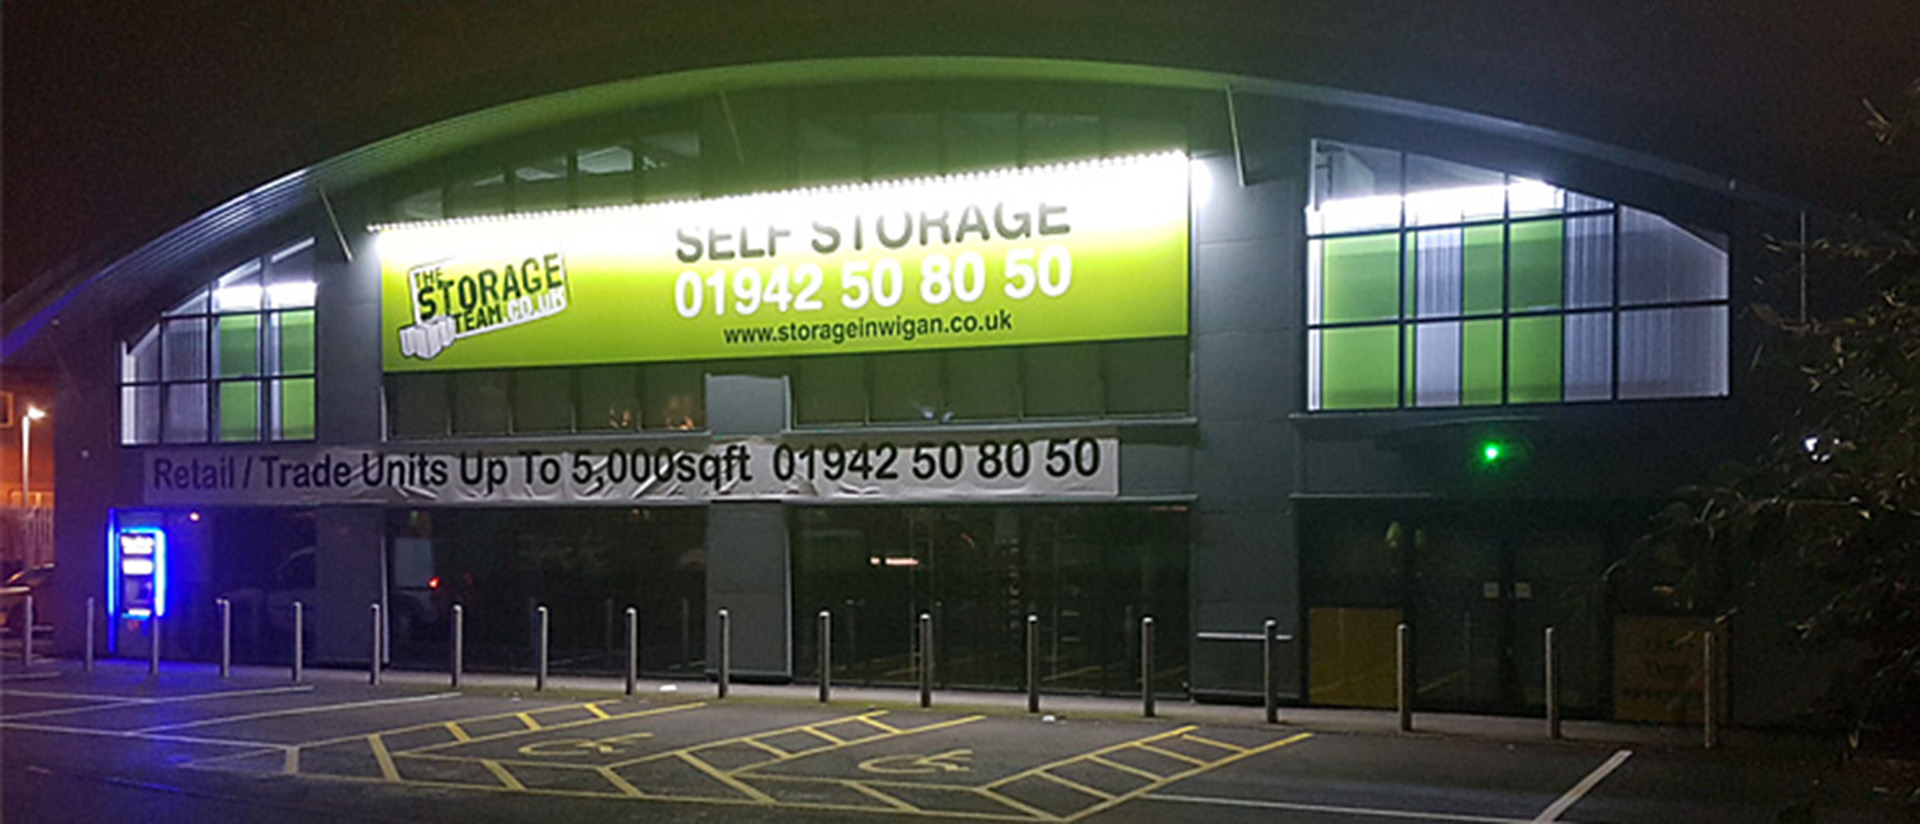 Self storage facility in Wigan